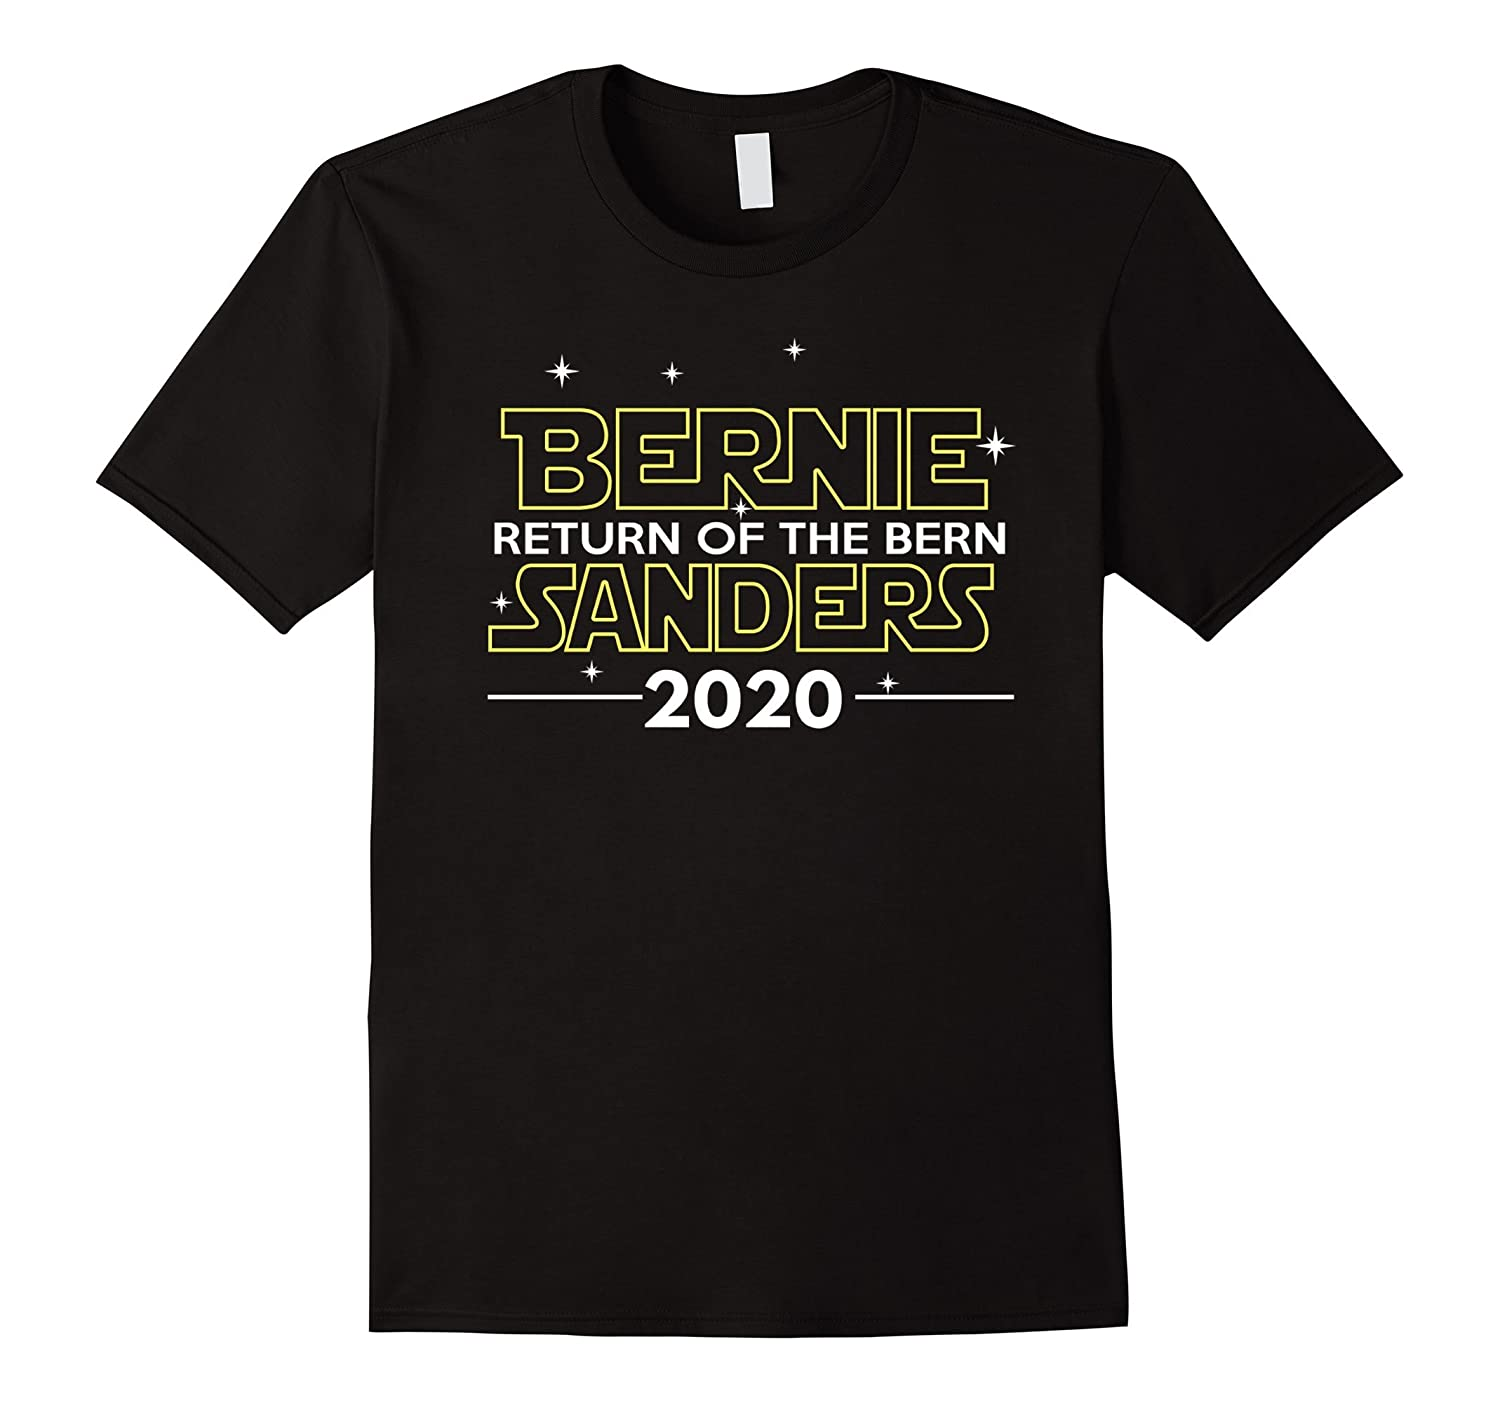 Bernie Sanders 2020 For President – Campaign Movement Shirts